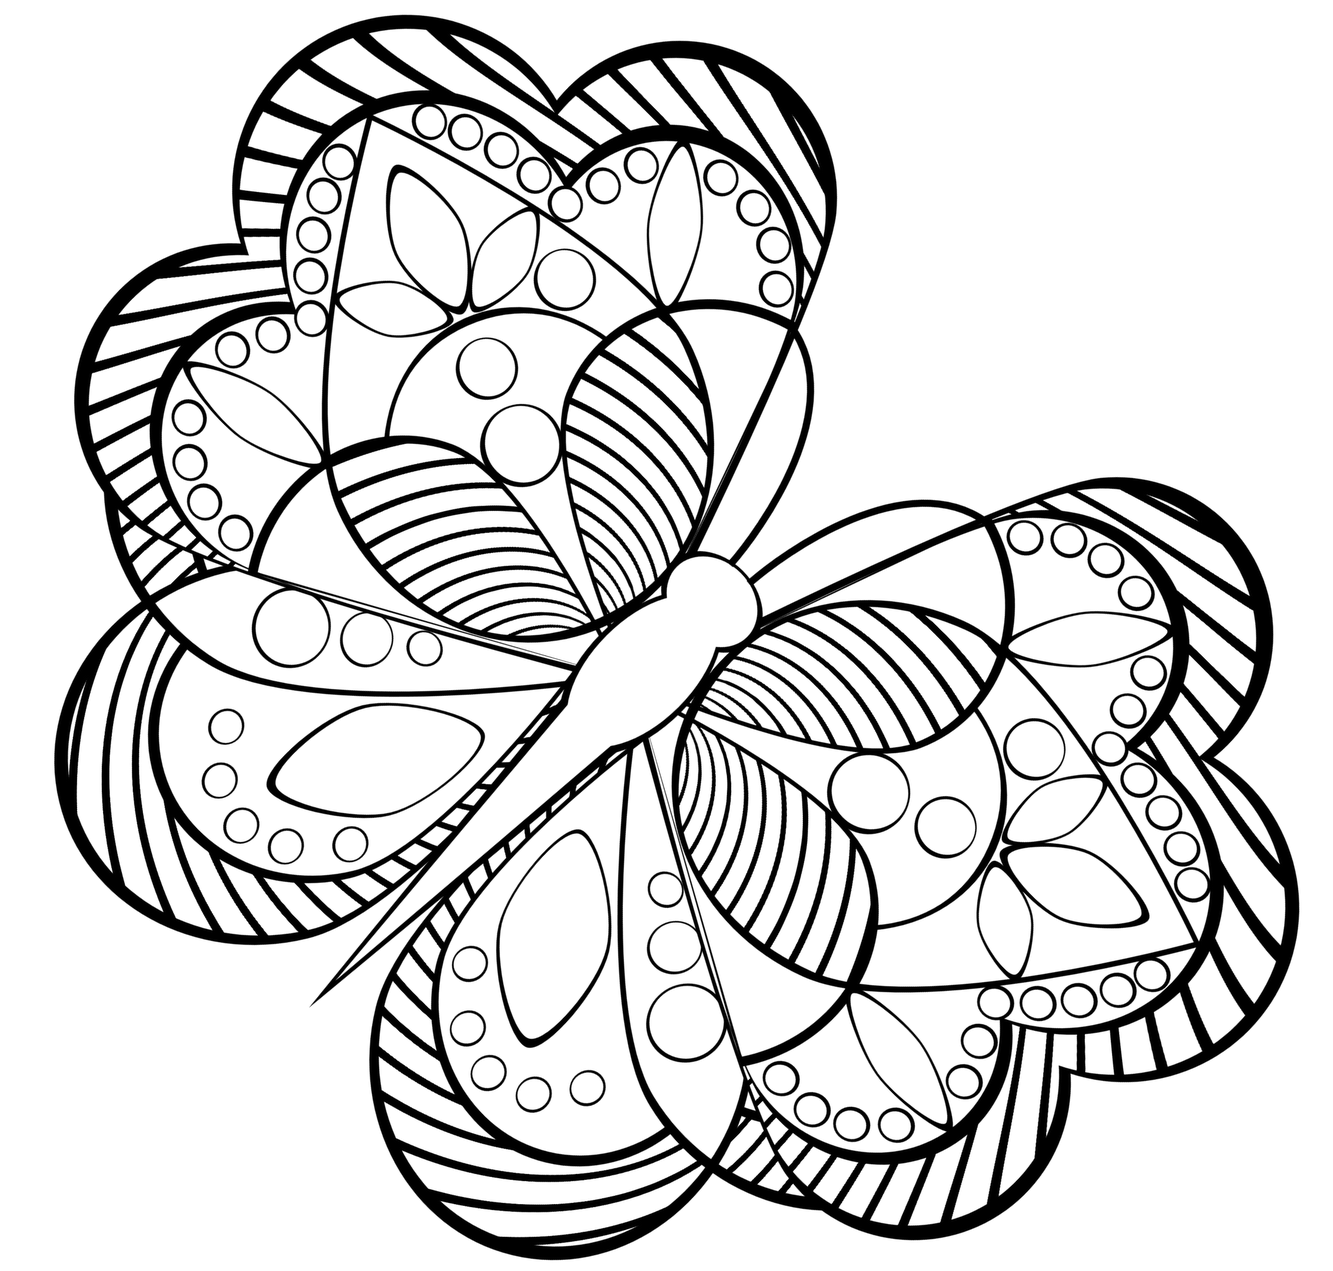 1333x1271 Adult Coloring Pages To Color Online For Free